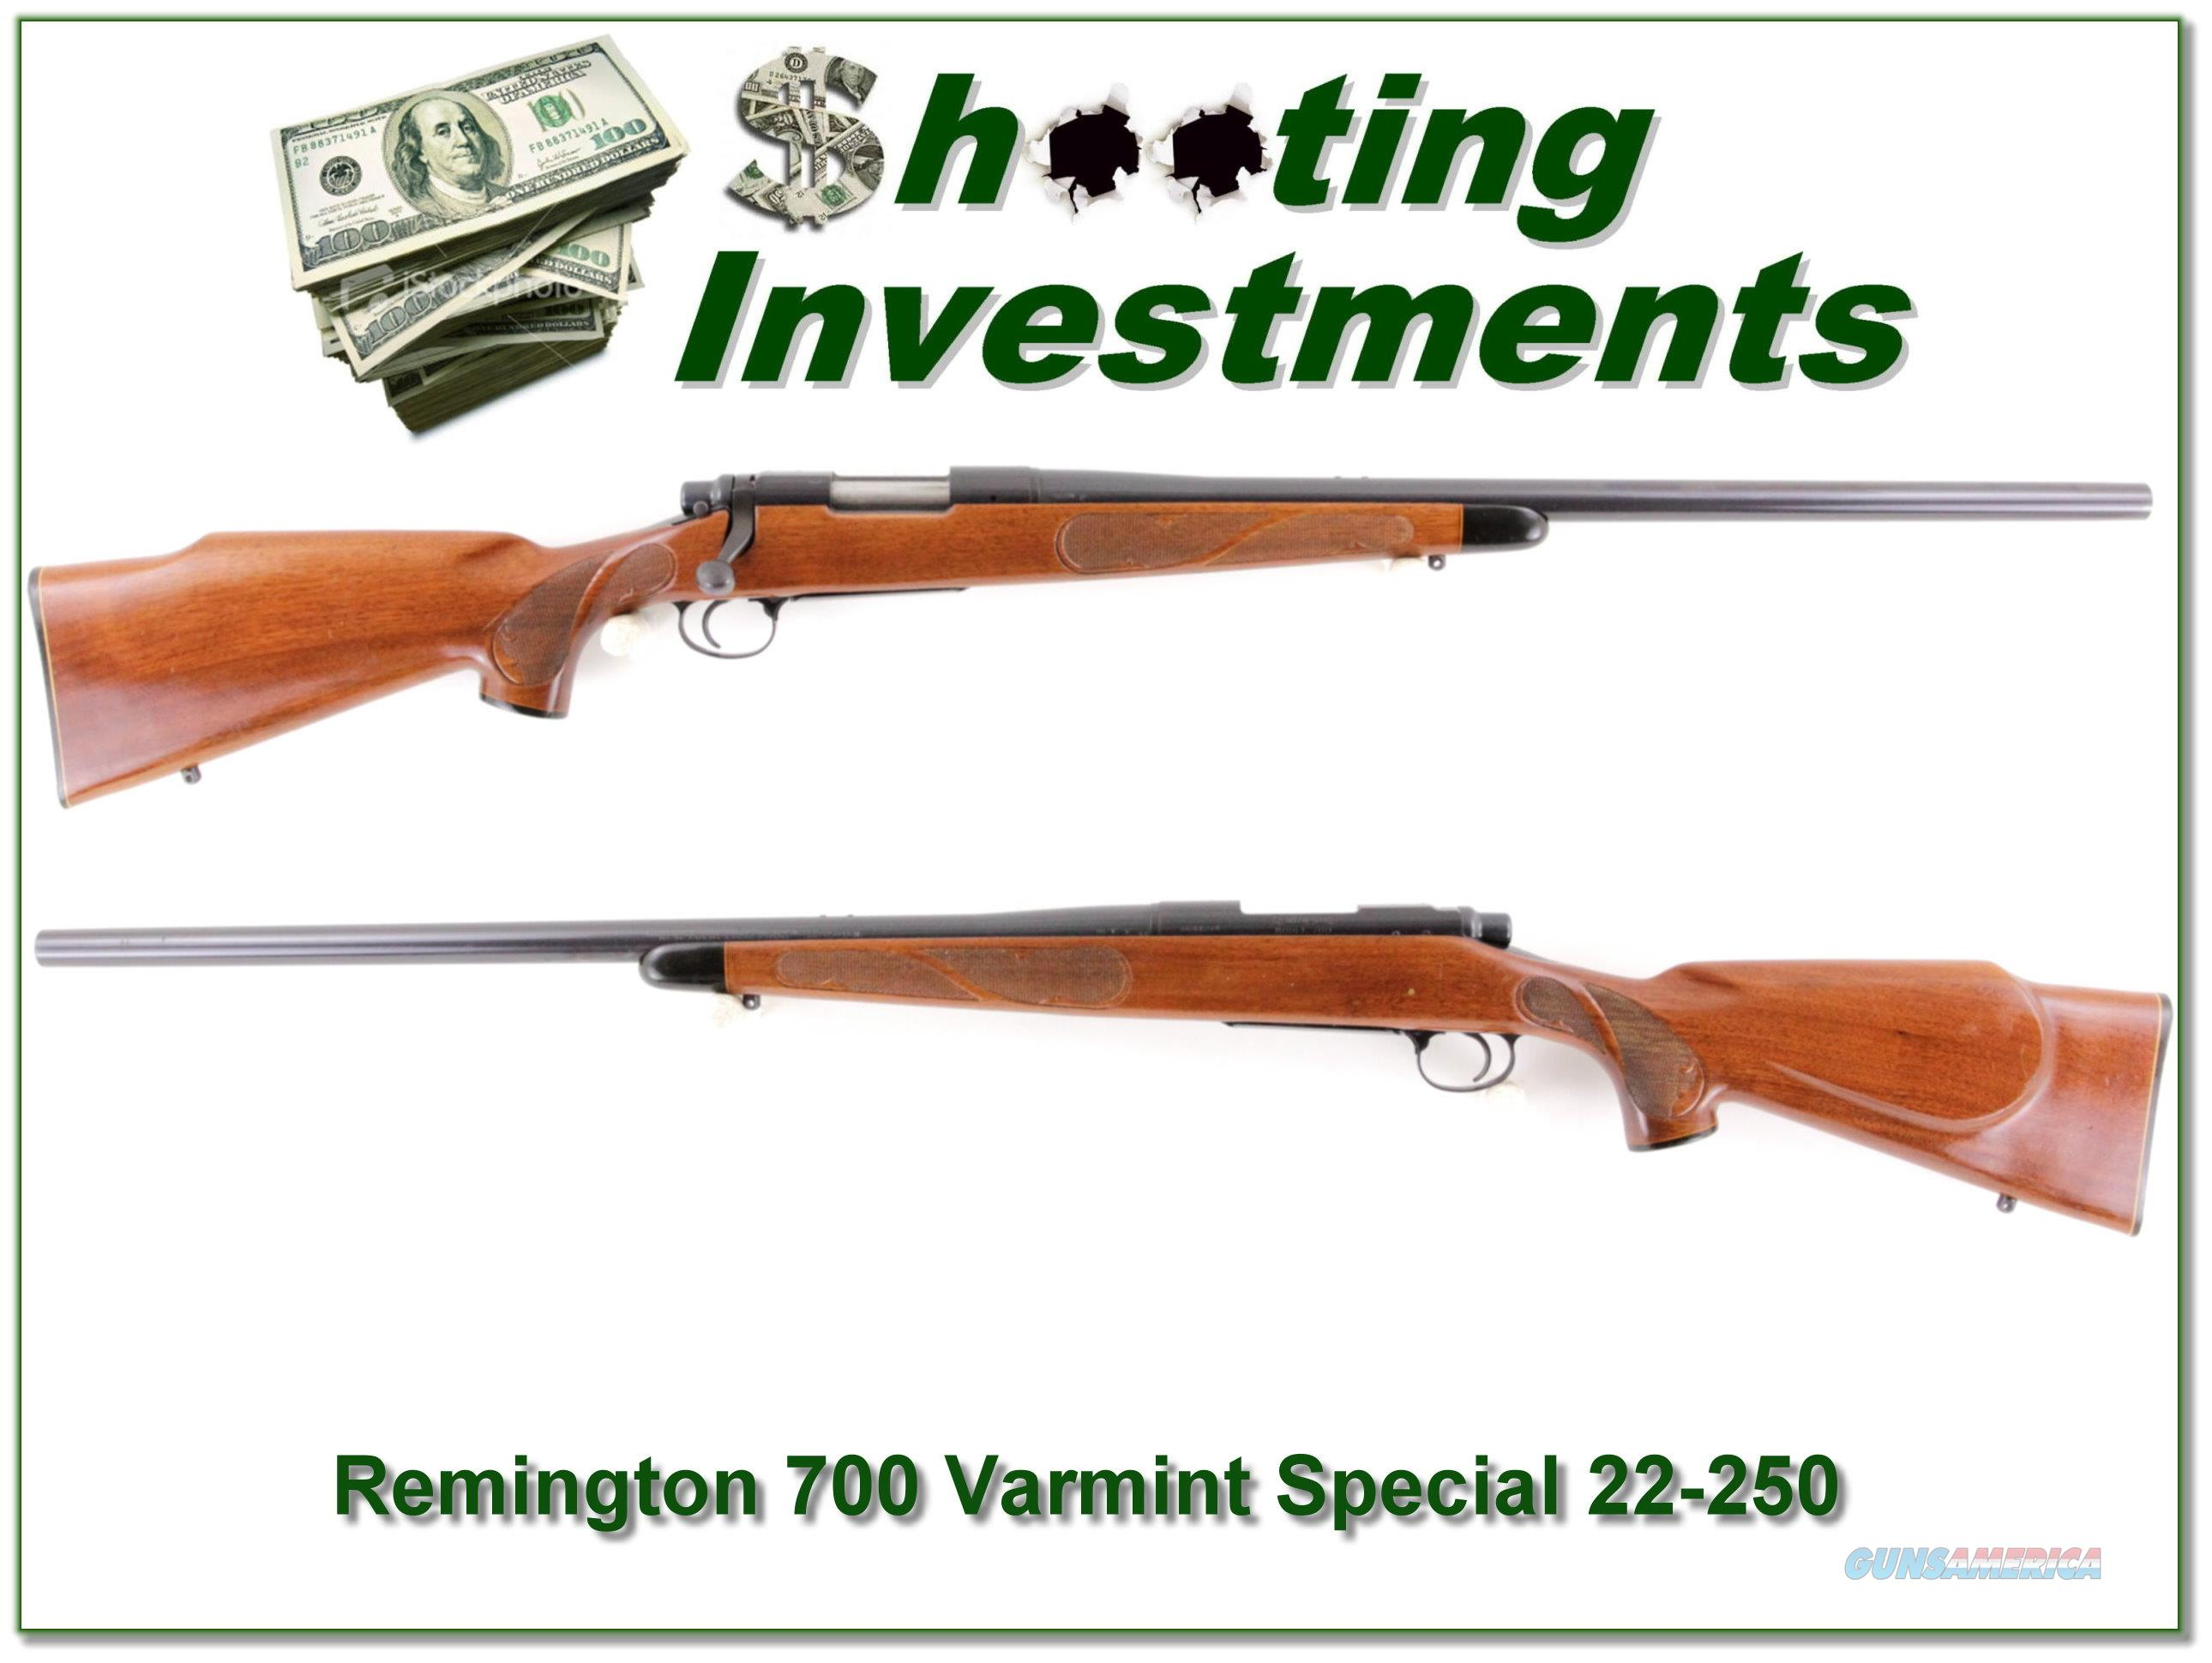 Remington 700 Varmint Special 22-250 Remington  Guns > Rifles > Remington Rifles - Modern > Model 700 > Sporting